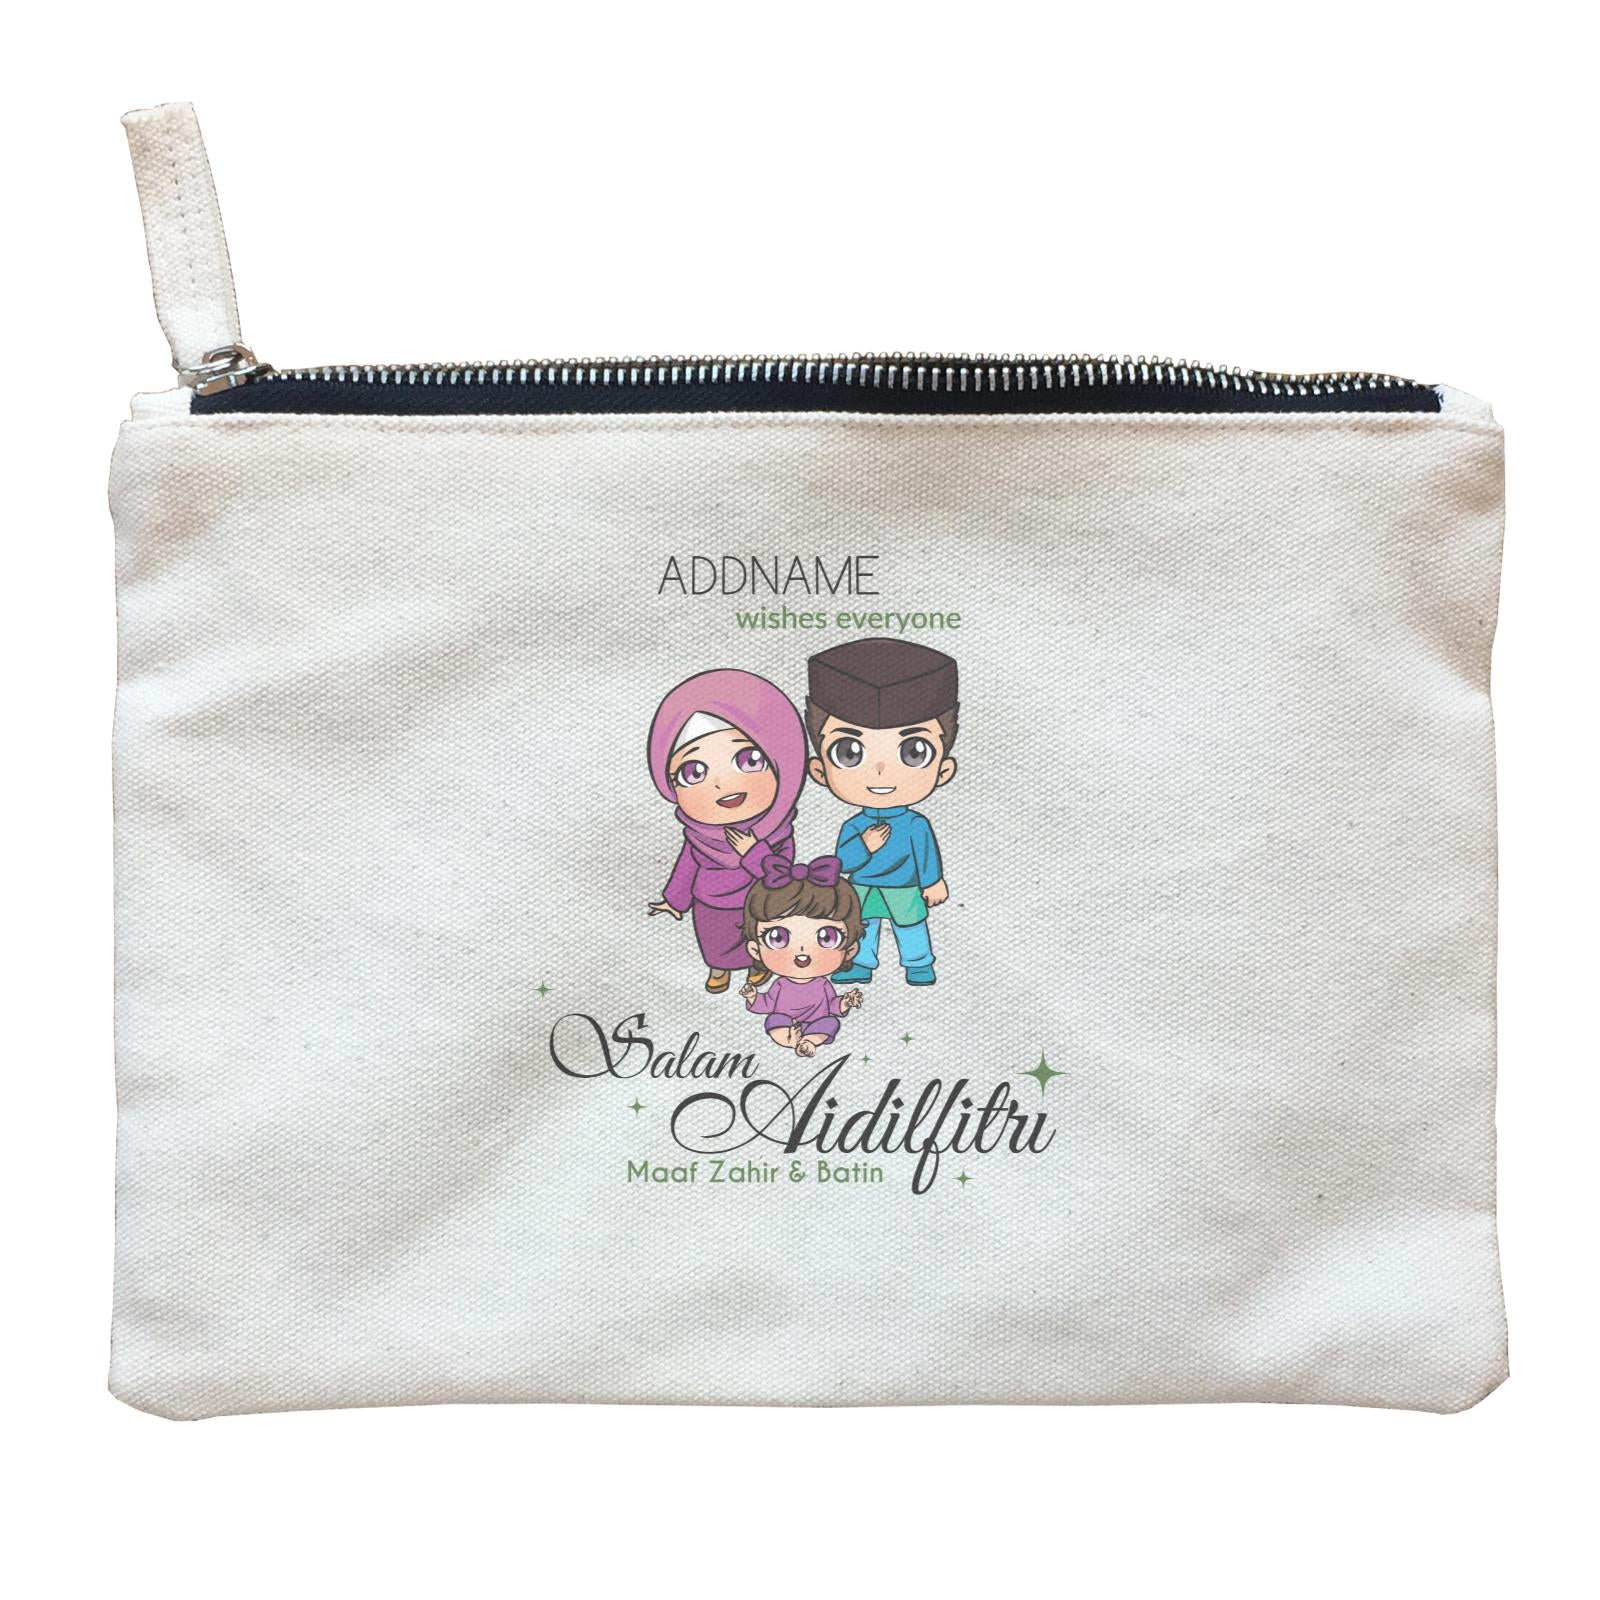 Raya Chibi Family And Baby Girl Addname Wishes Everyone Salam Aidilfitri Maaf Zahir & Batin Zipper Pouch